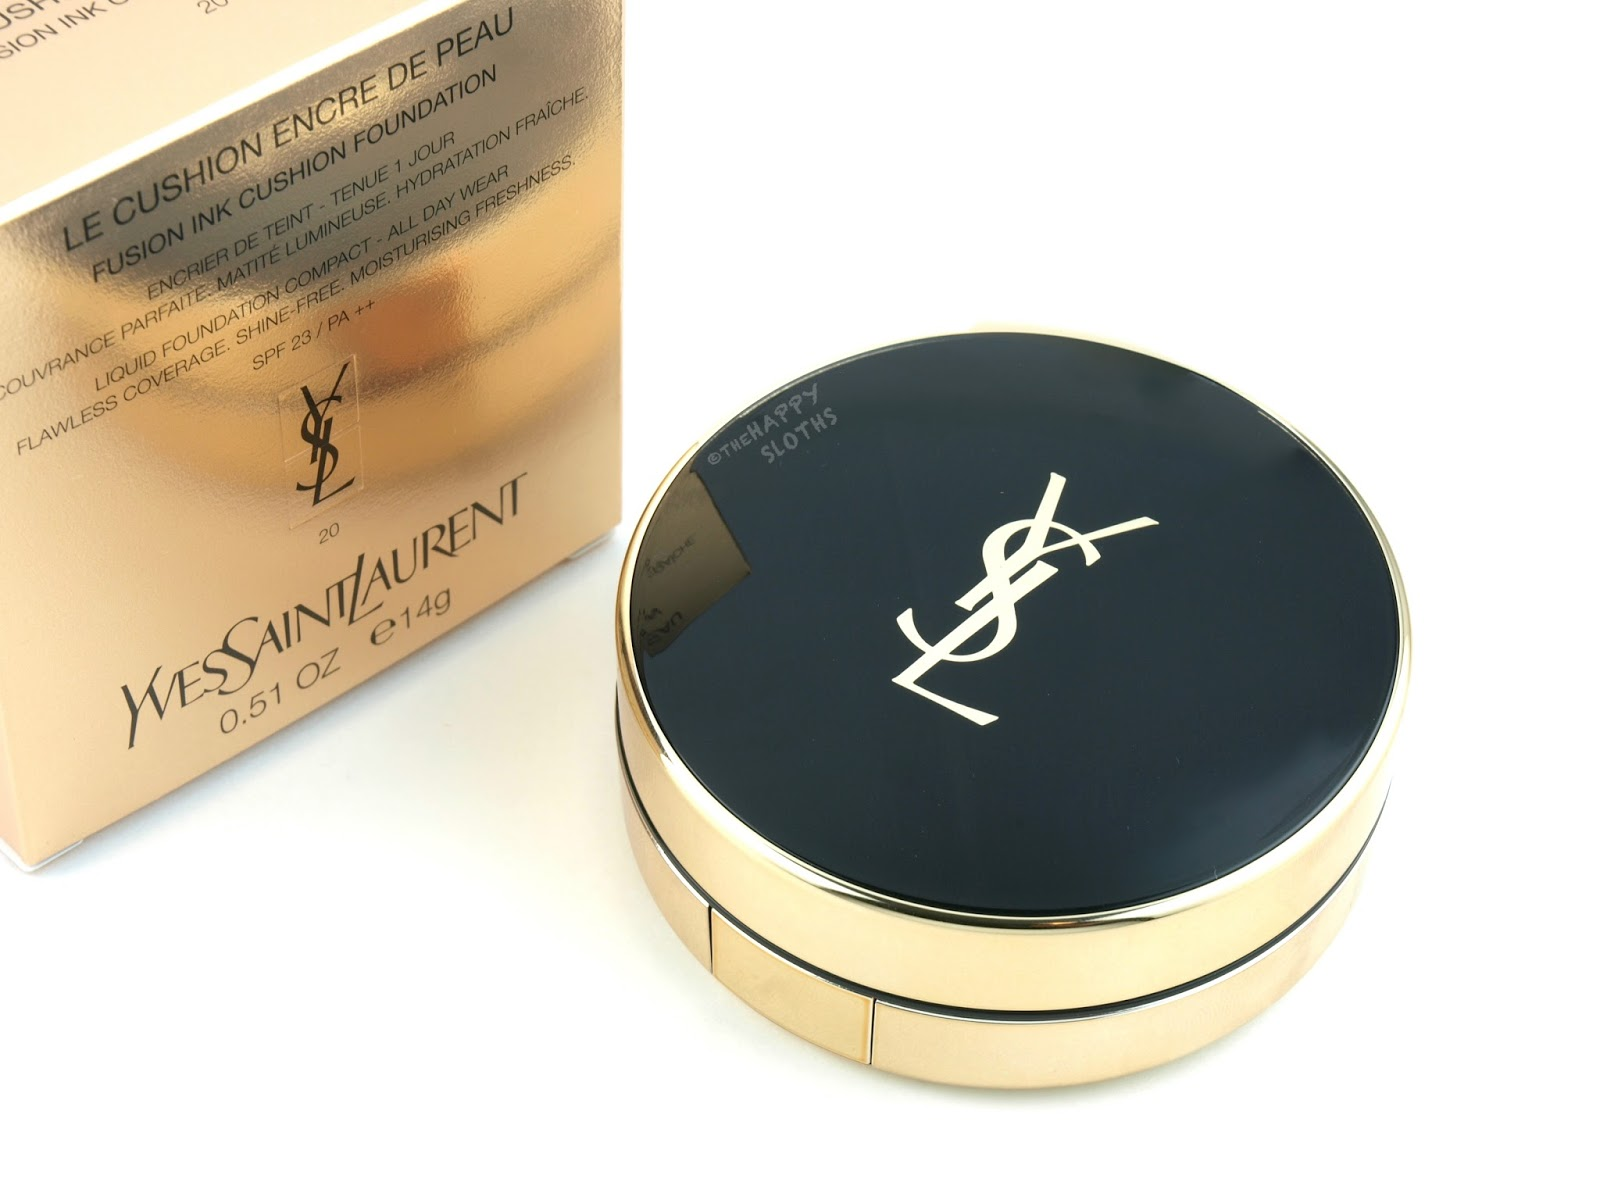 Yves Saint Laurent Fusion Ink Cushion Foundation Shade 20